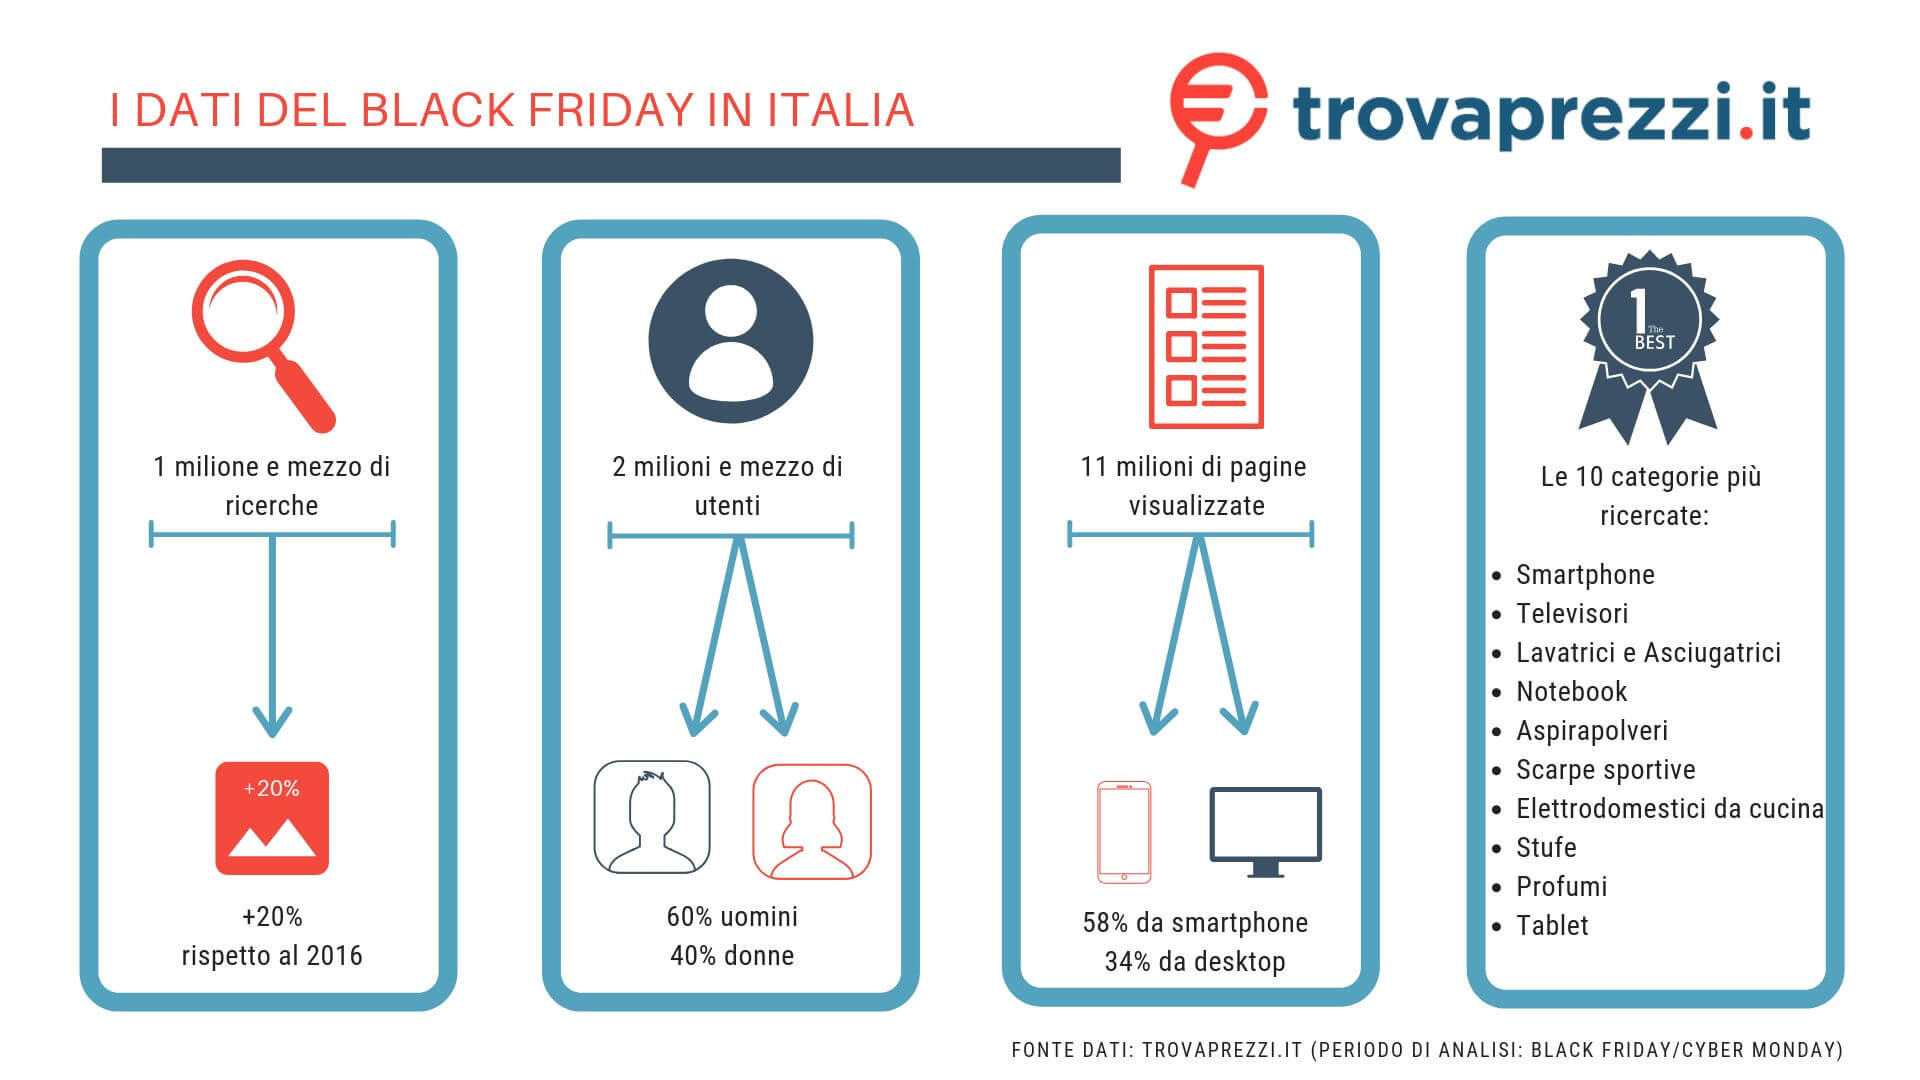 fc7c99ce106f Black Friday 2018: offerte e sconti per gli acquisti - Inside Marketing